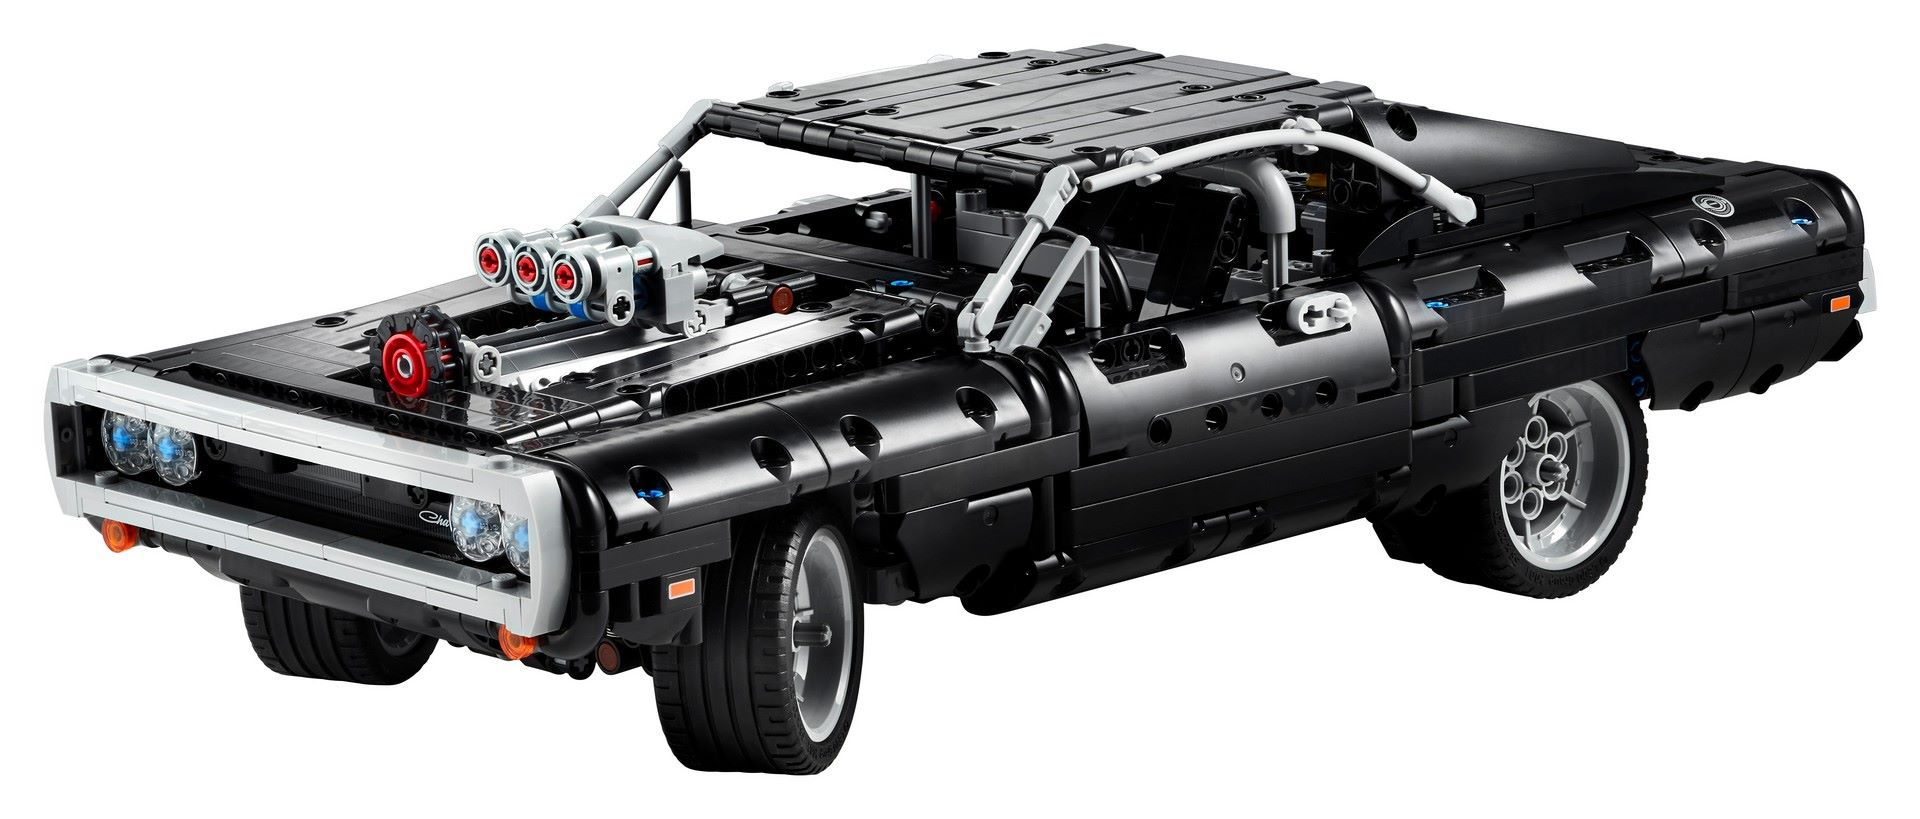 Lego-Dodge-Charger-6